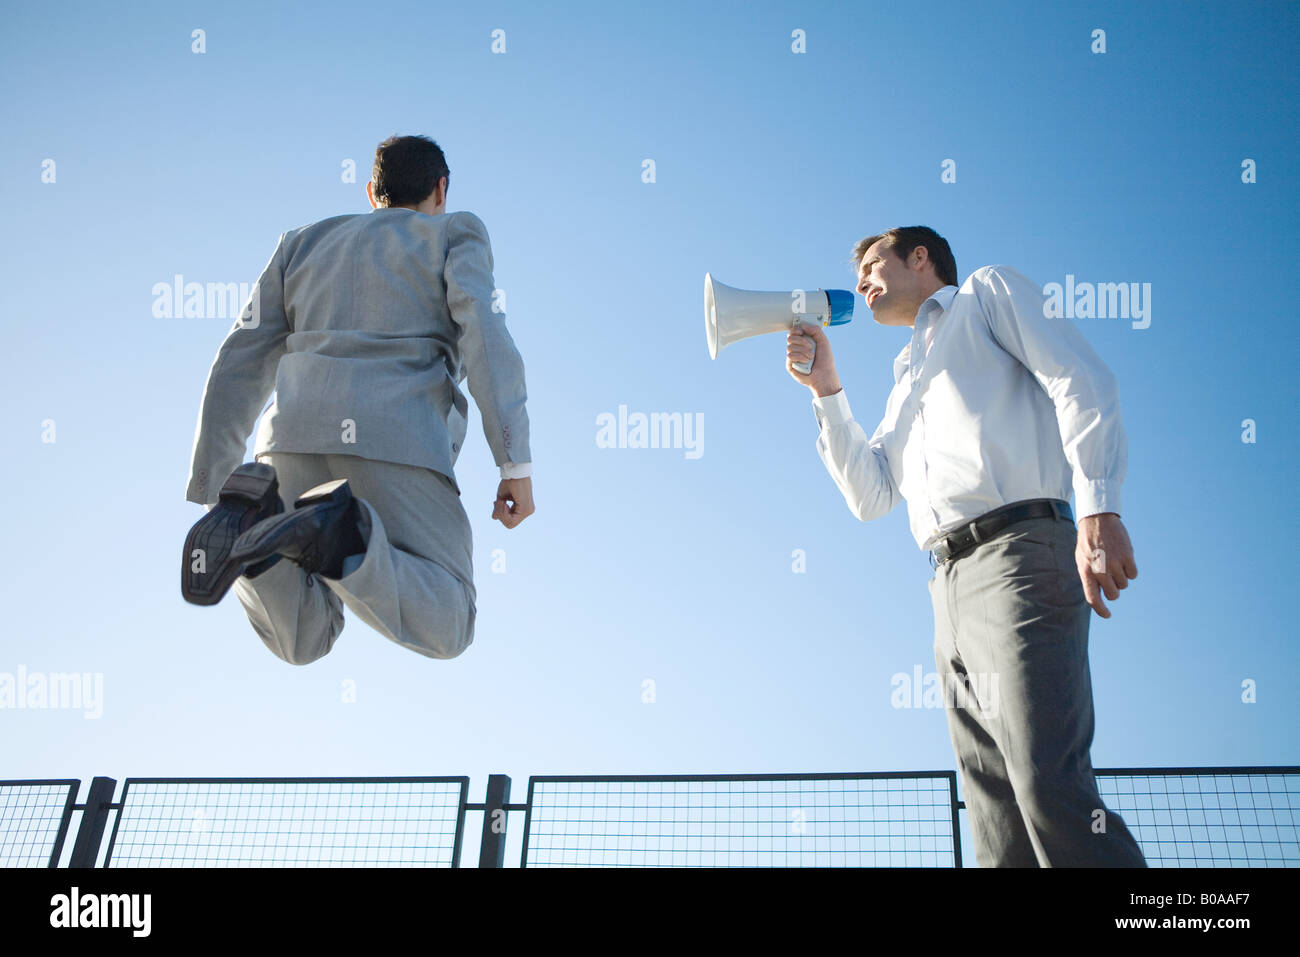 Businessman standing beside colleague, shouting into megaphone, colleague jumping in air, low angle view - Stock Image